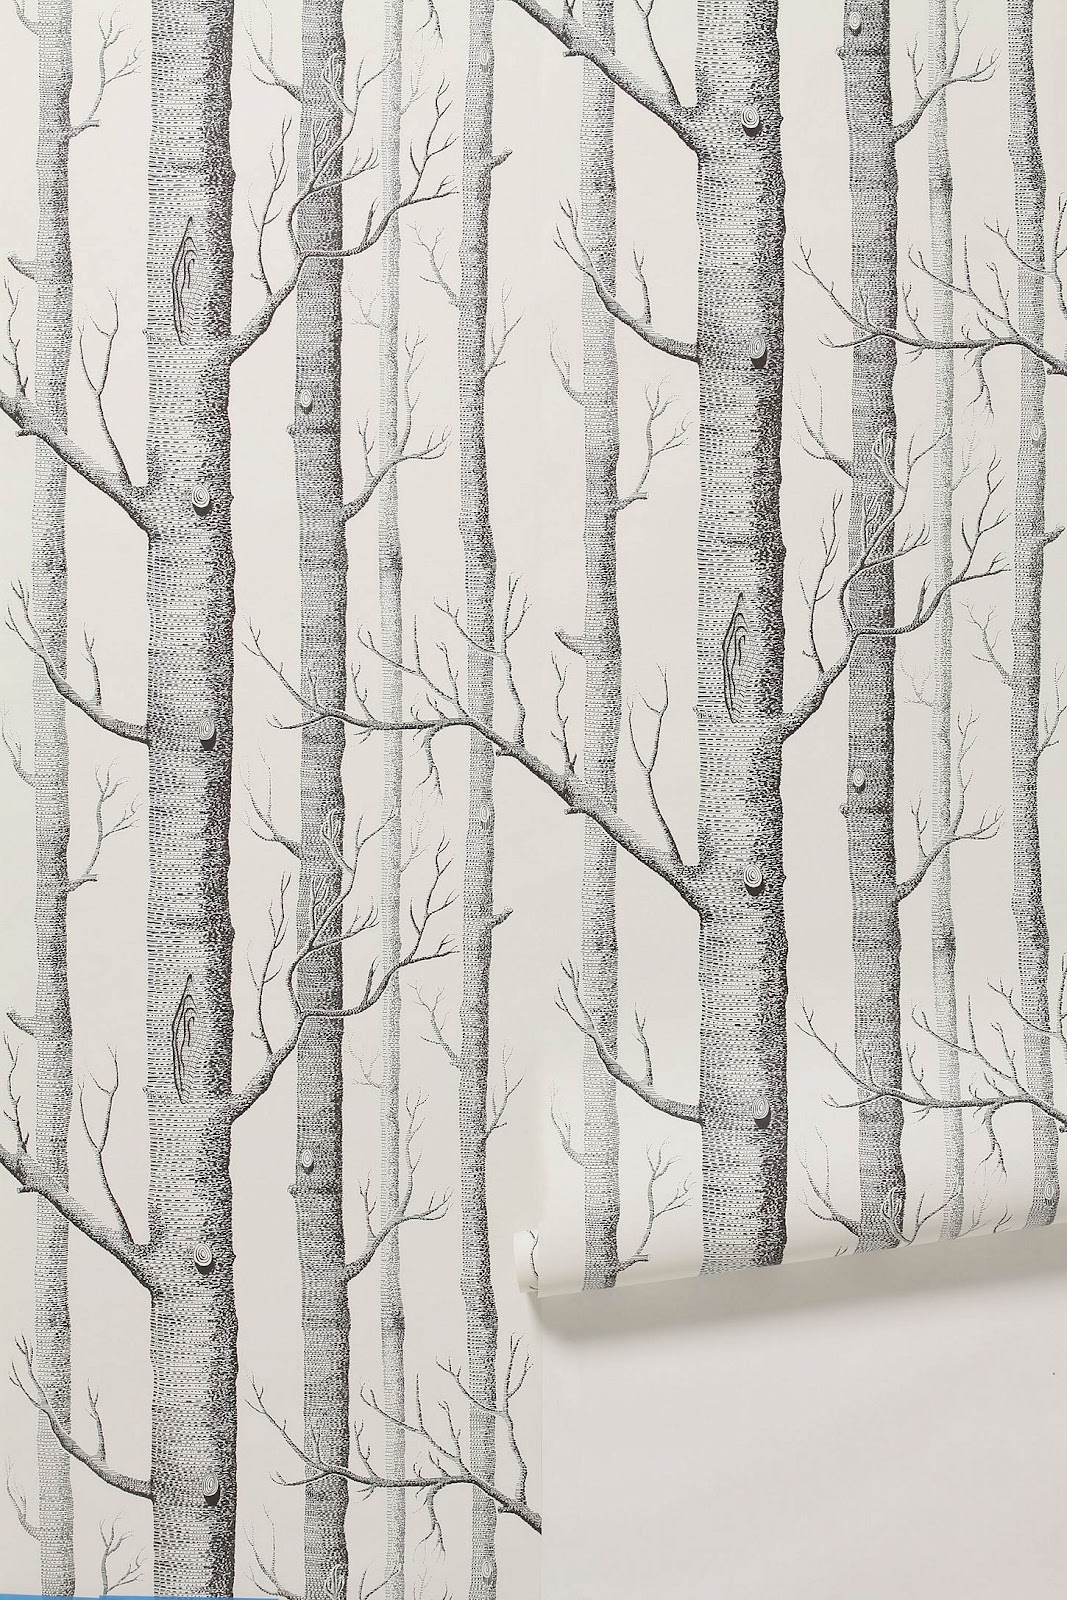 Birch Tree Wall Paper